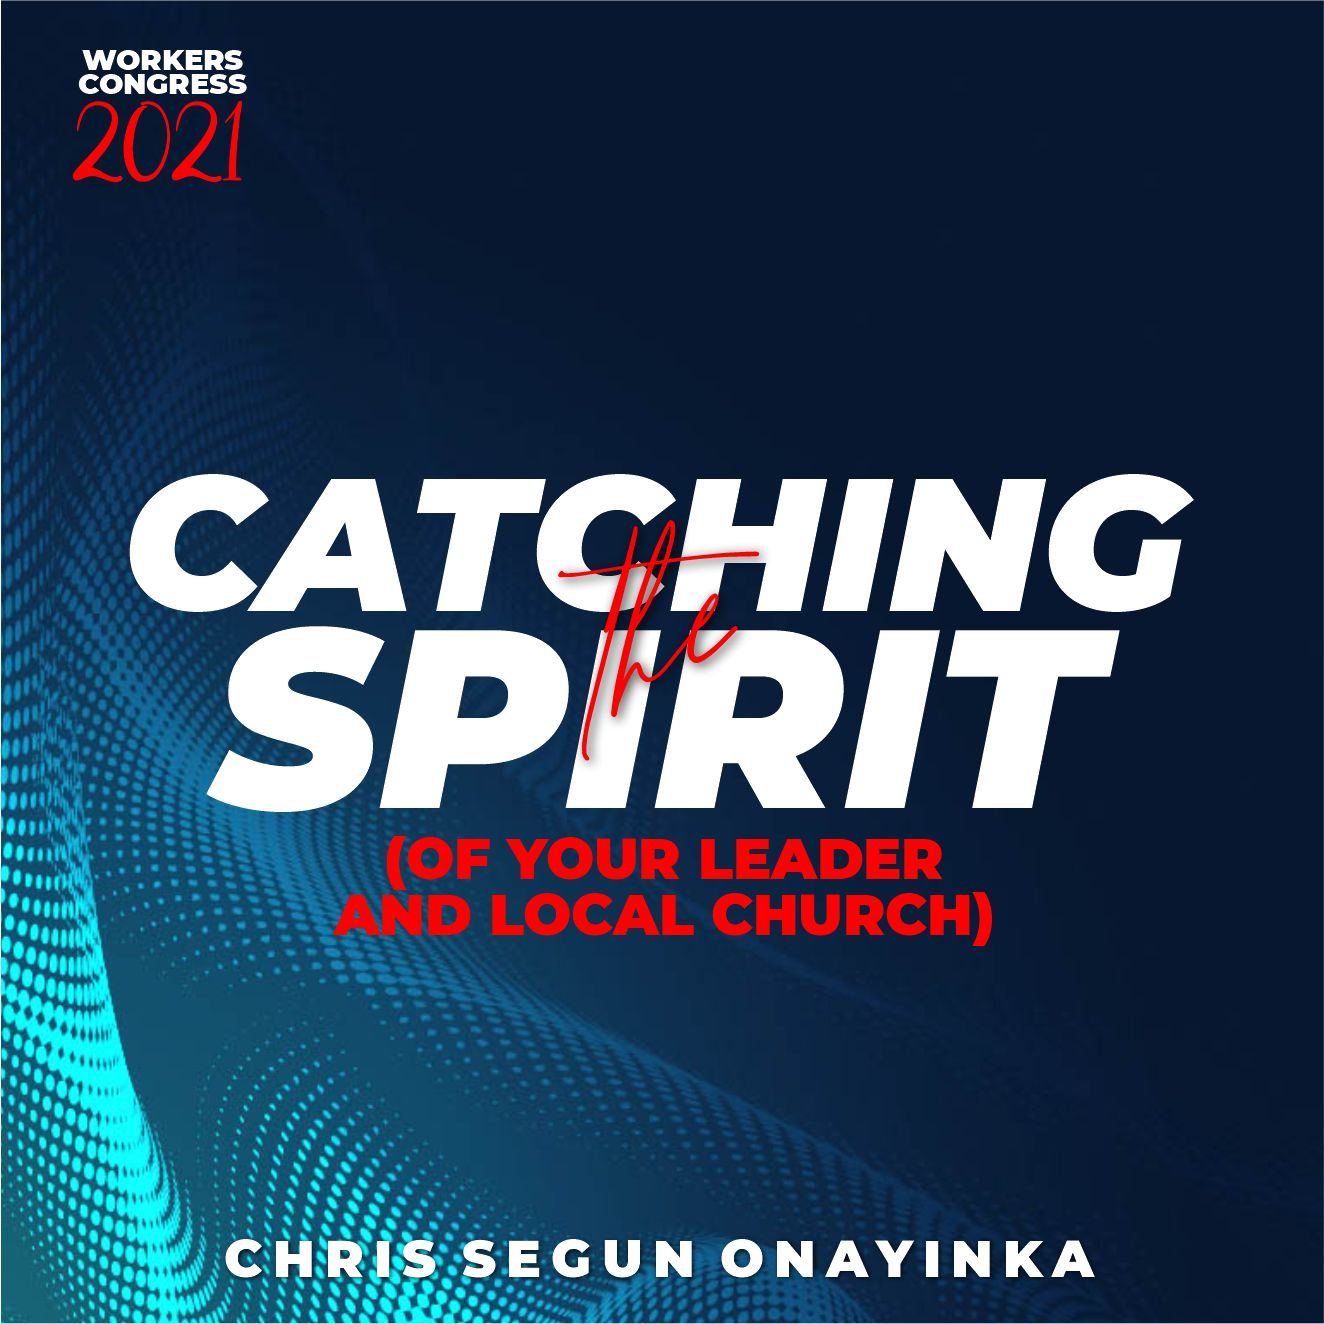 Workers Congress 2021 – Catching the Spirit (of your Leader and local Church)